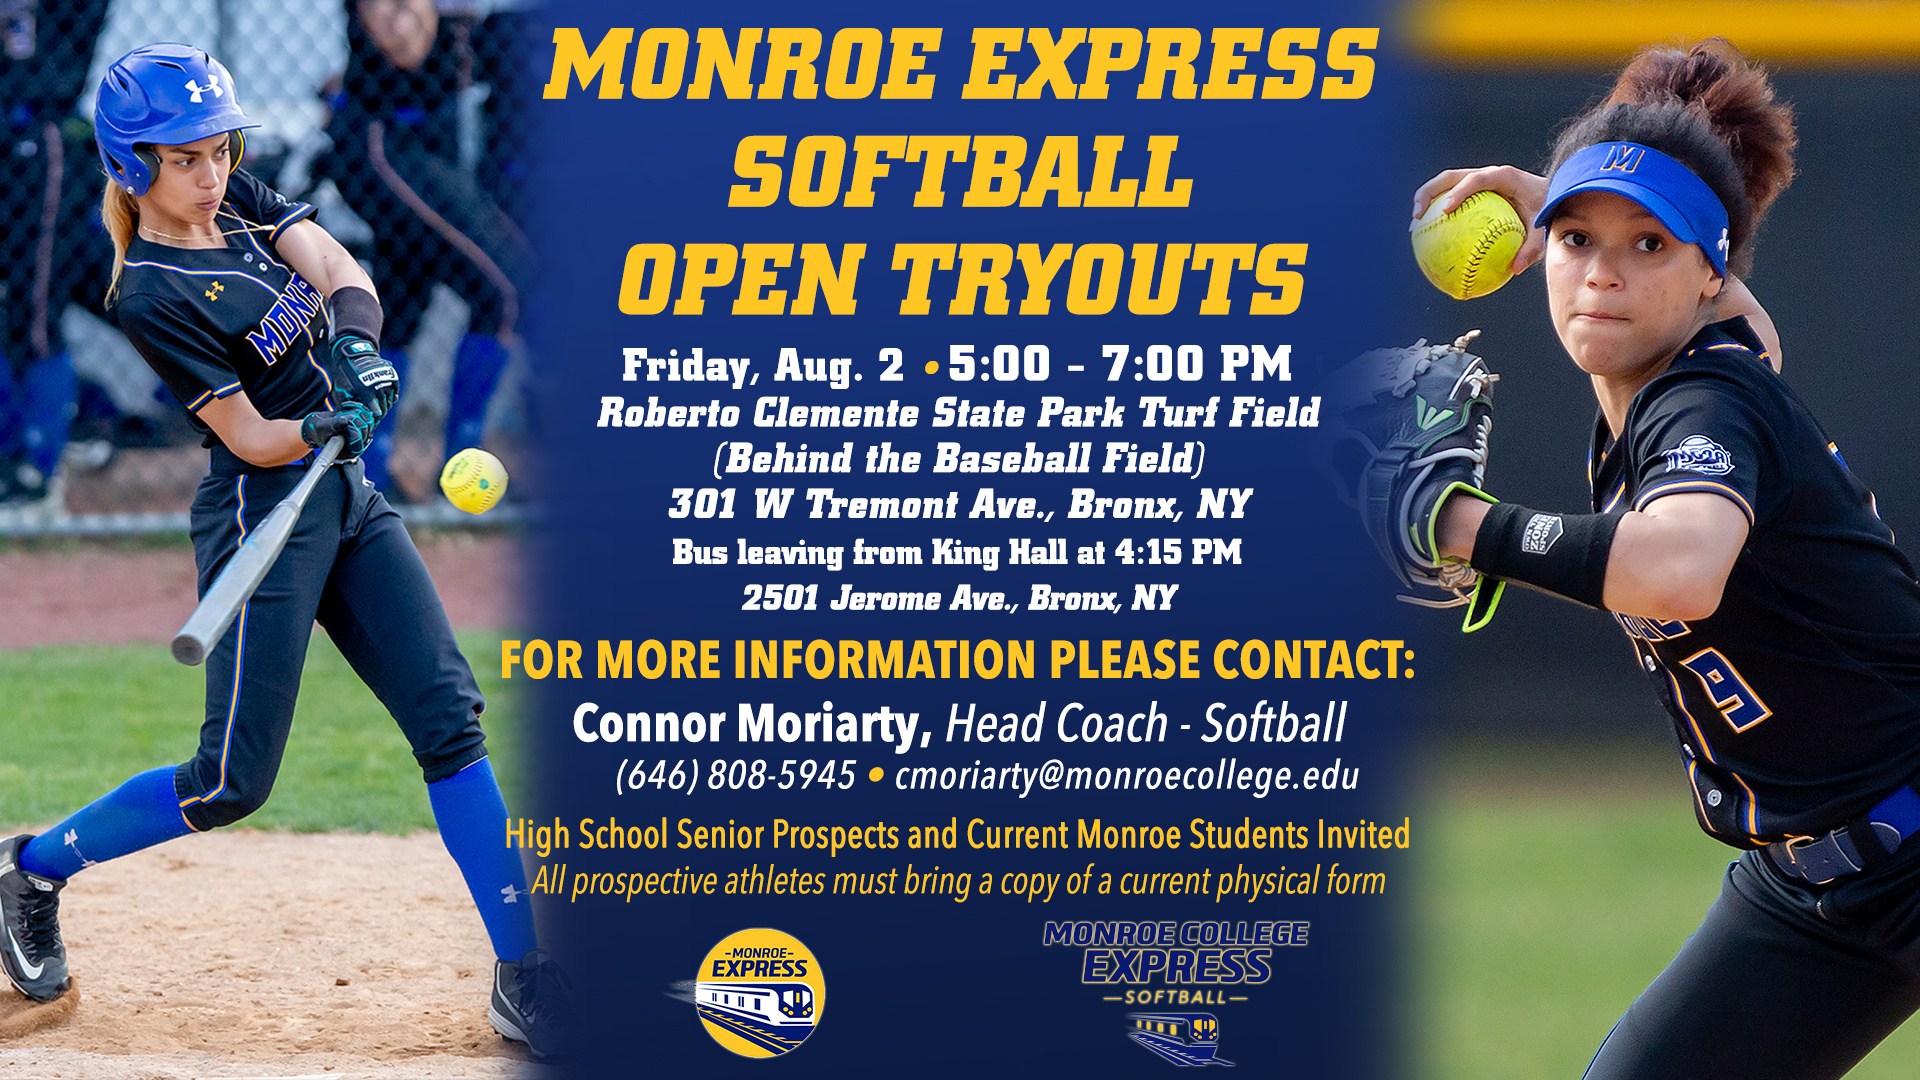 SCHEDULE UPDATE: Monroe Express Softball Open Tryouts Rescheduled to